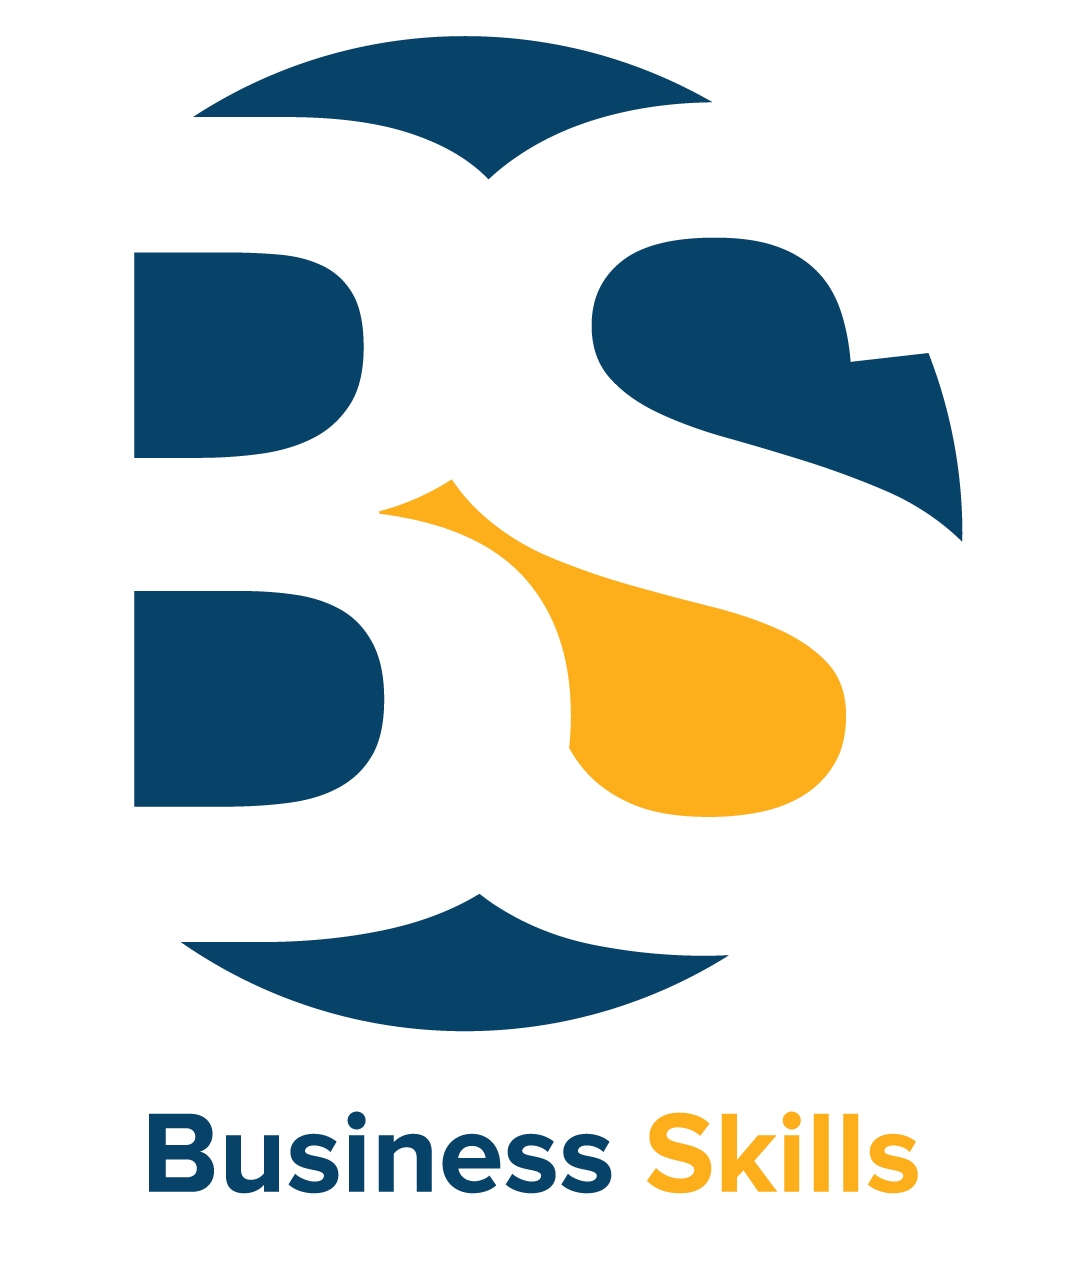 Business Skills - Certification Training & IT Courses with Guaranteed ResultsVendor Logo